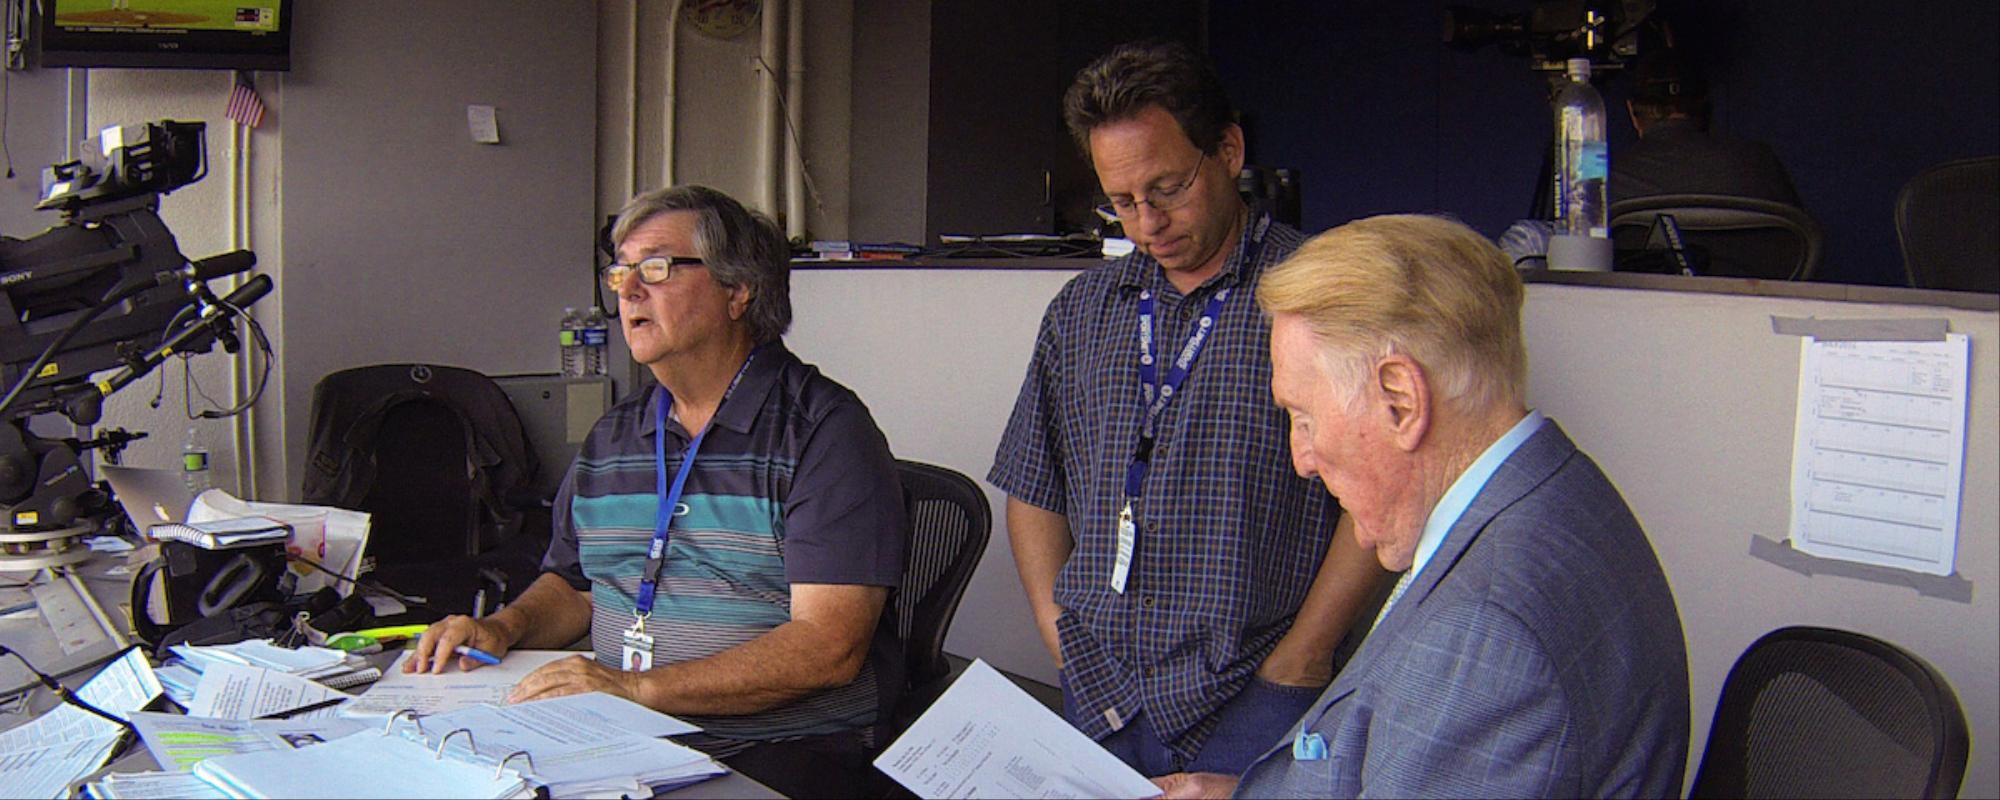 With a Little Help from His Friends: The Story Behind Baseball Announcer Vin Scully's Stories